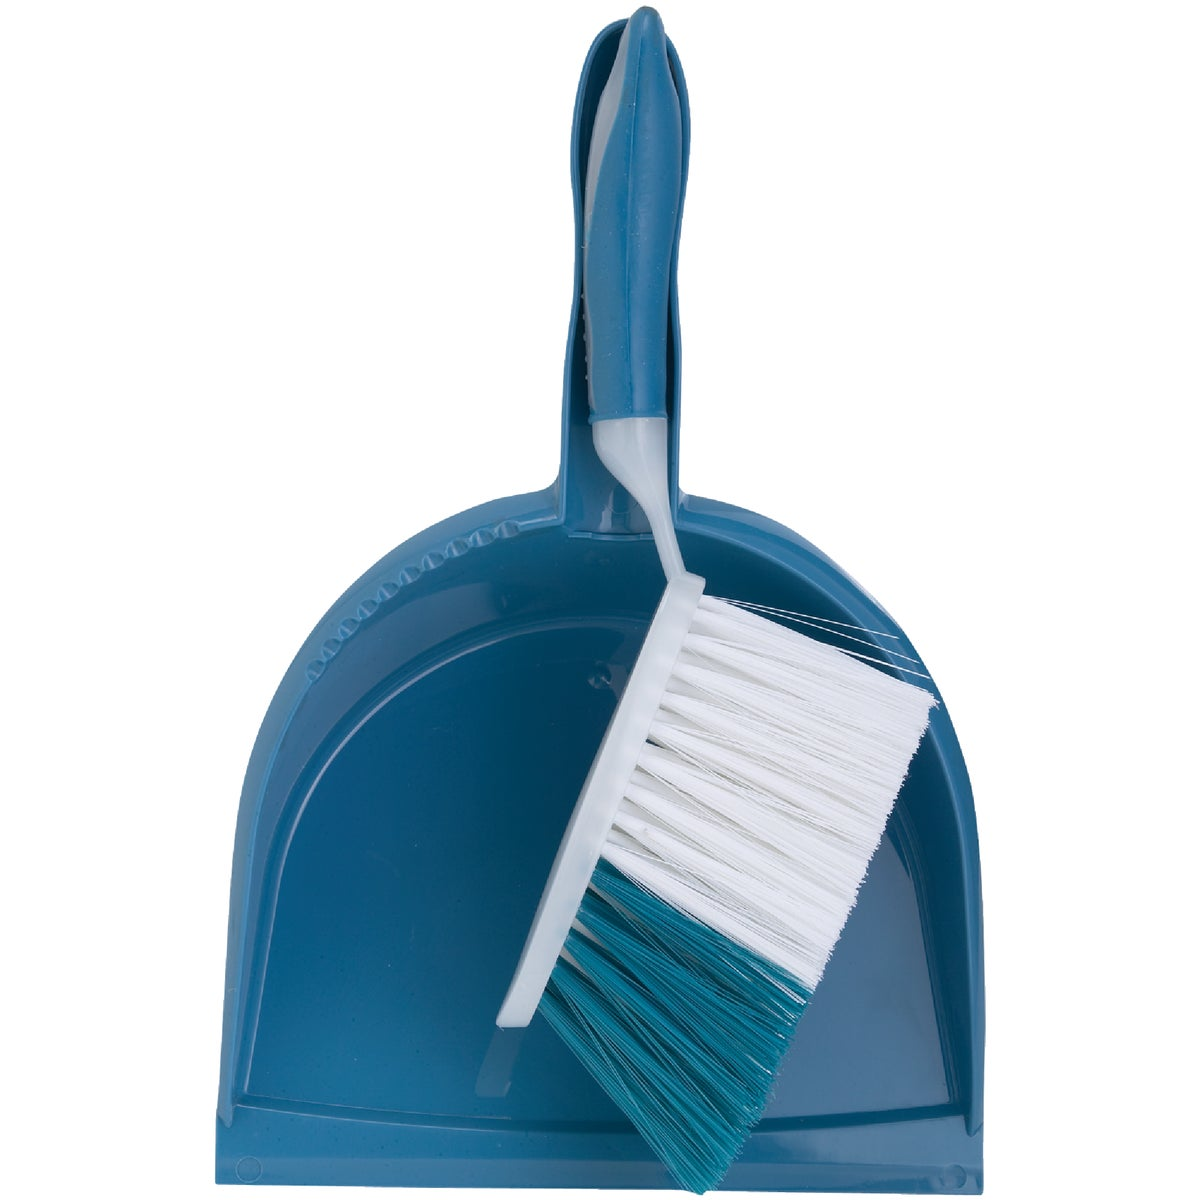 BRUSH SET & DUSTPAN - 615269 by Do it Best